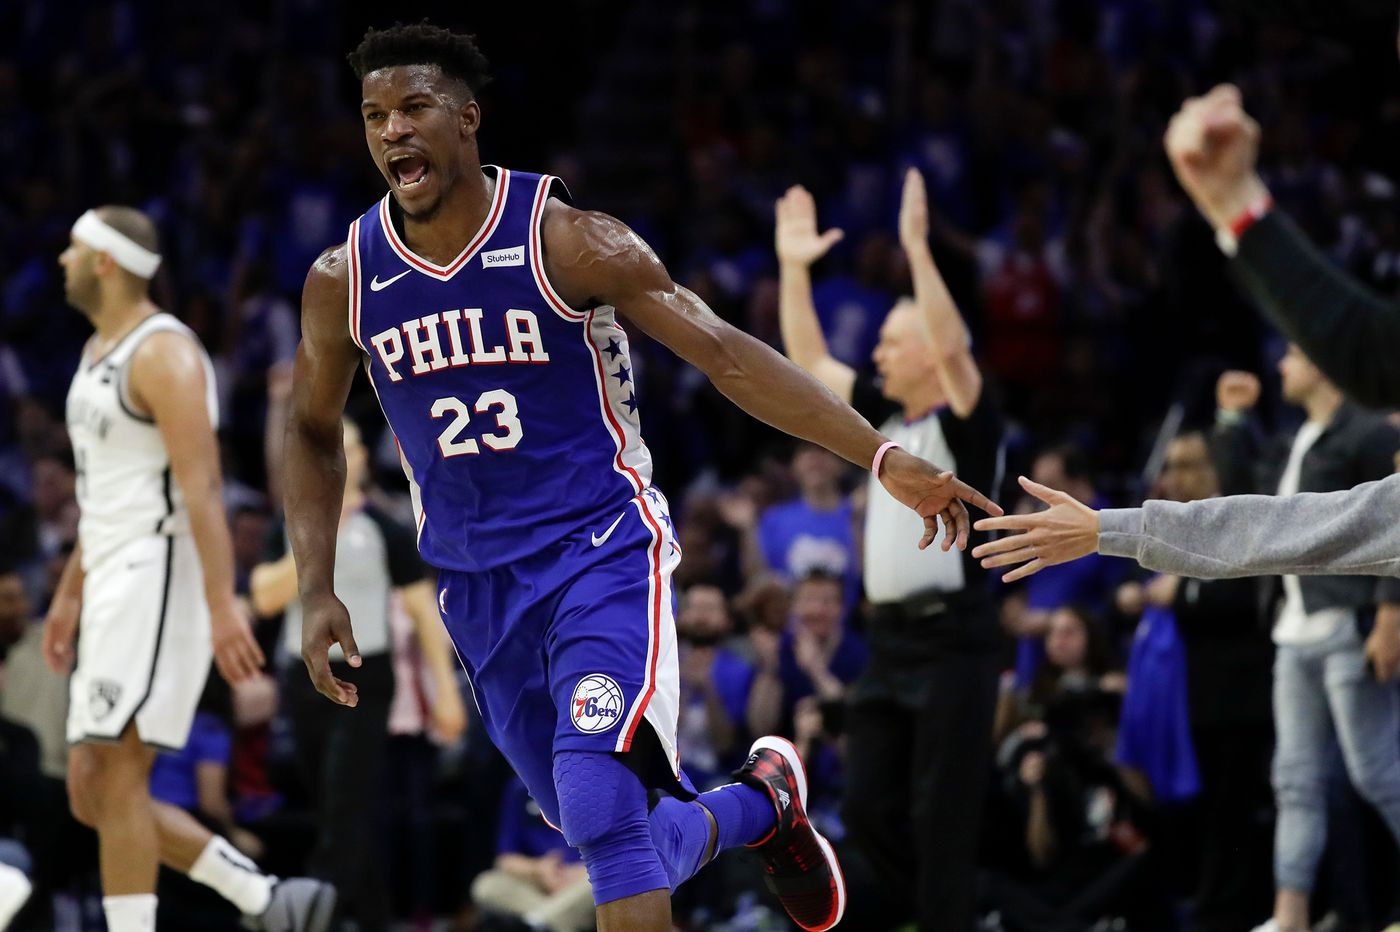 Jimmy Butler did it, but he did it alone as Sixers fall flat in NBA playoff opener against Nets | Bob Ford